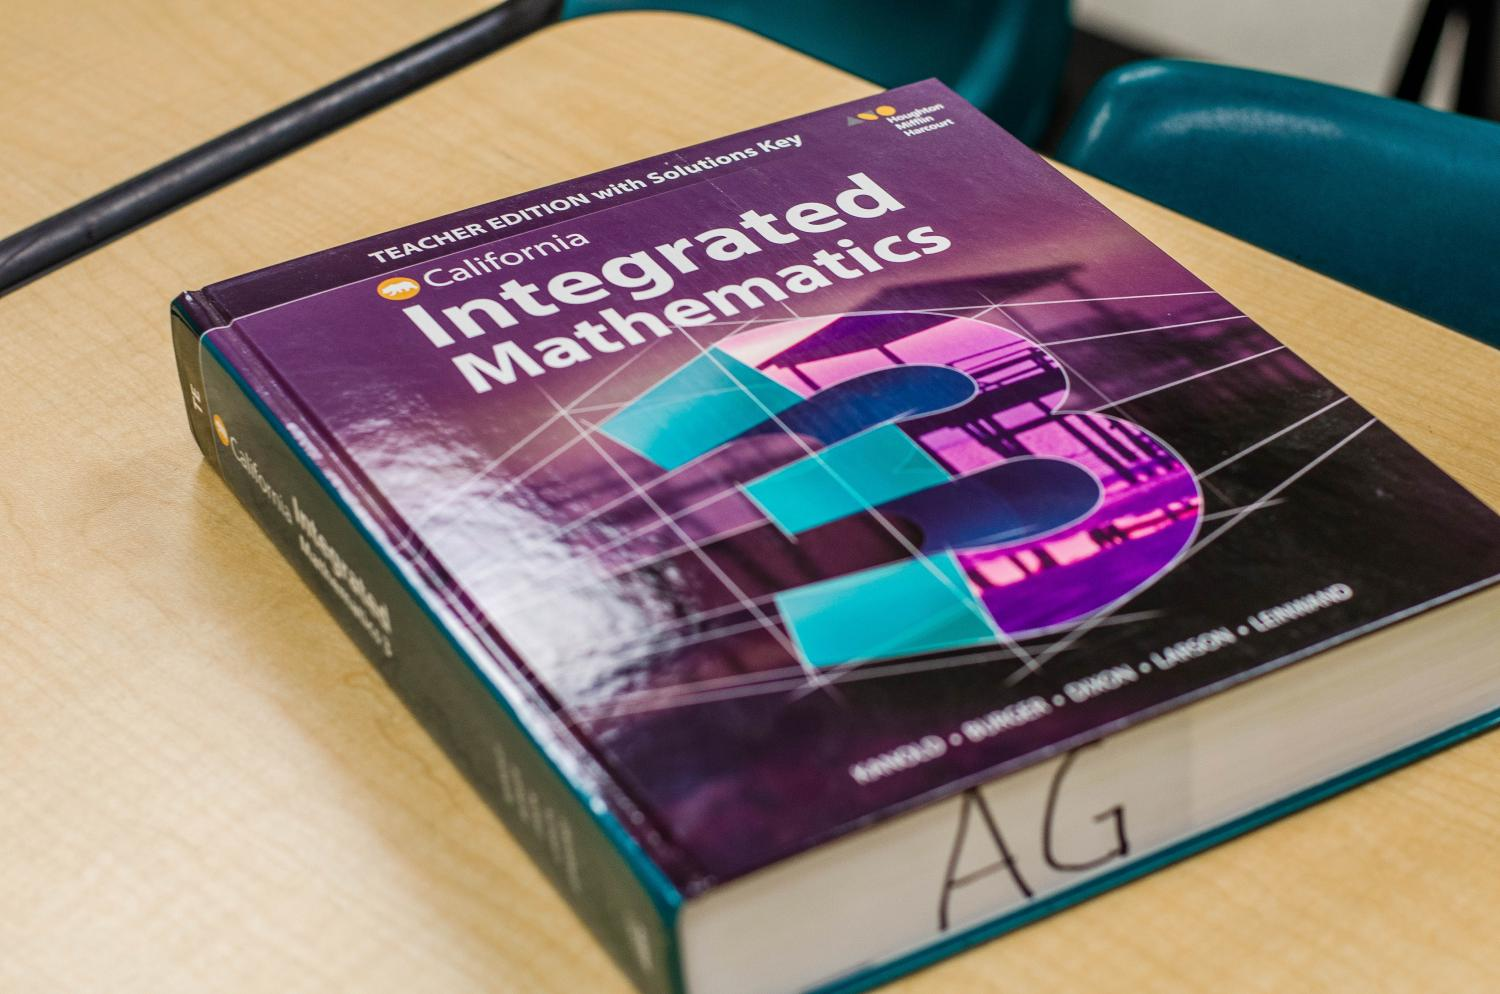 Math textbook that teachers are planning to use for the new course, Integrated Math 3.